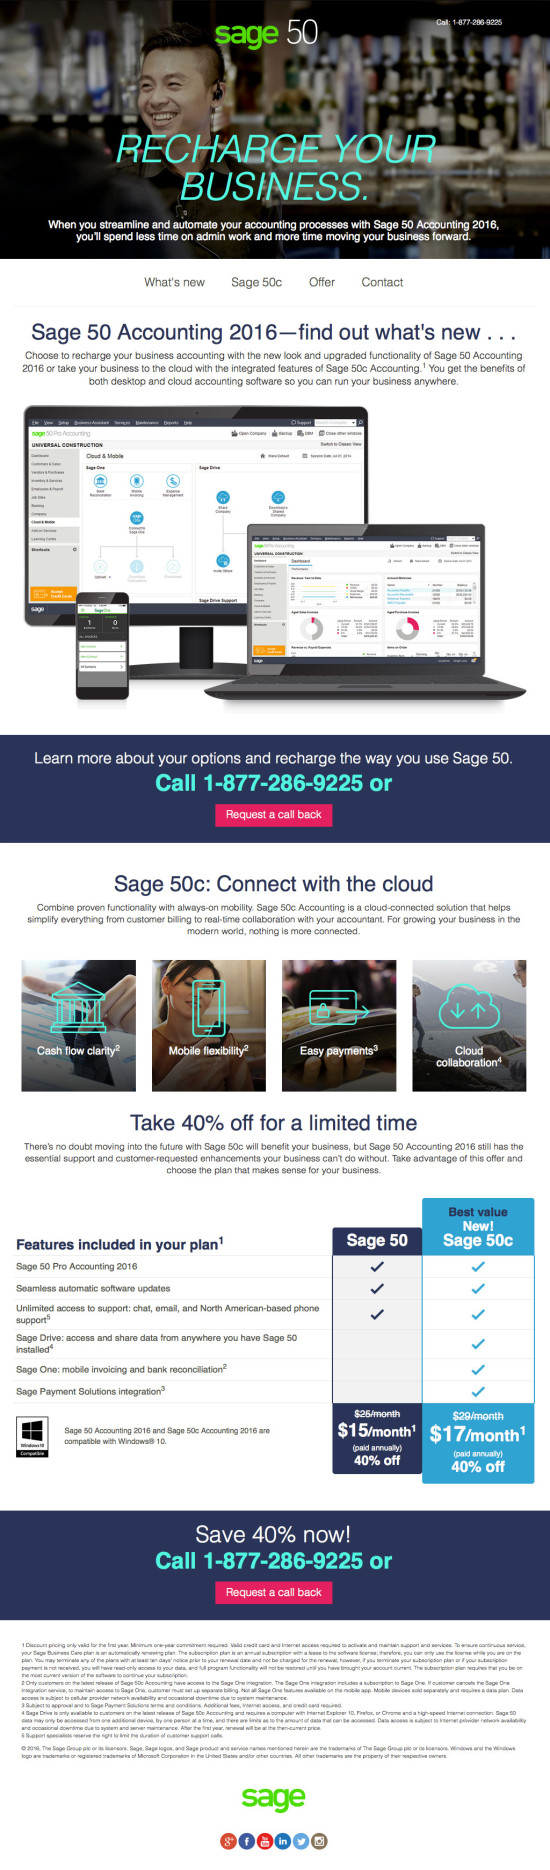 Sage 50c Upgrade Landing Page - January Promo